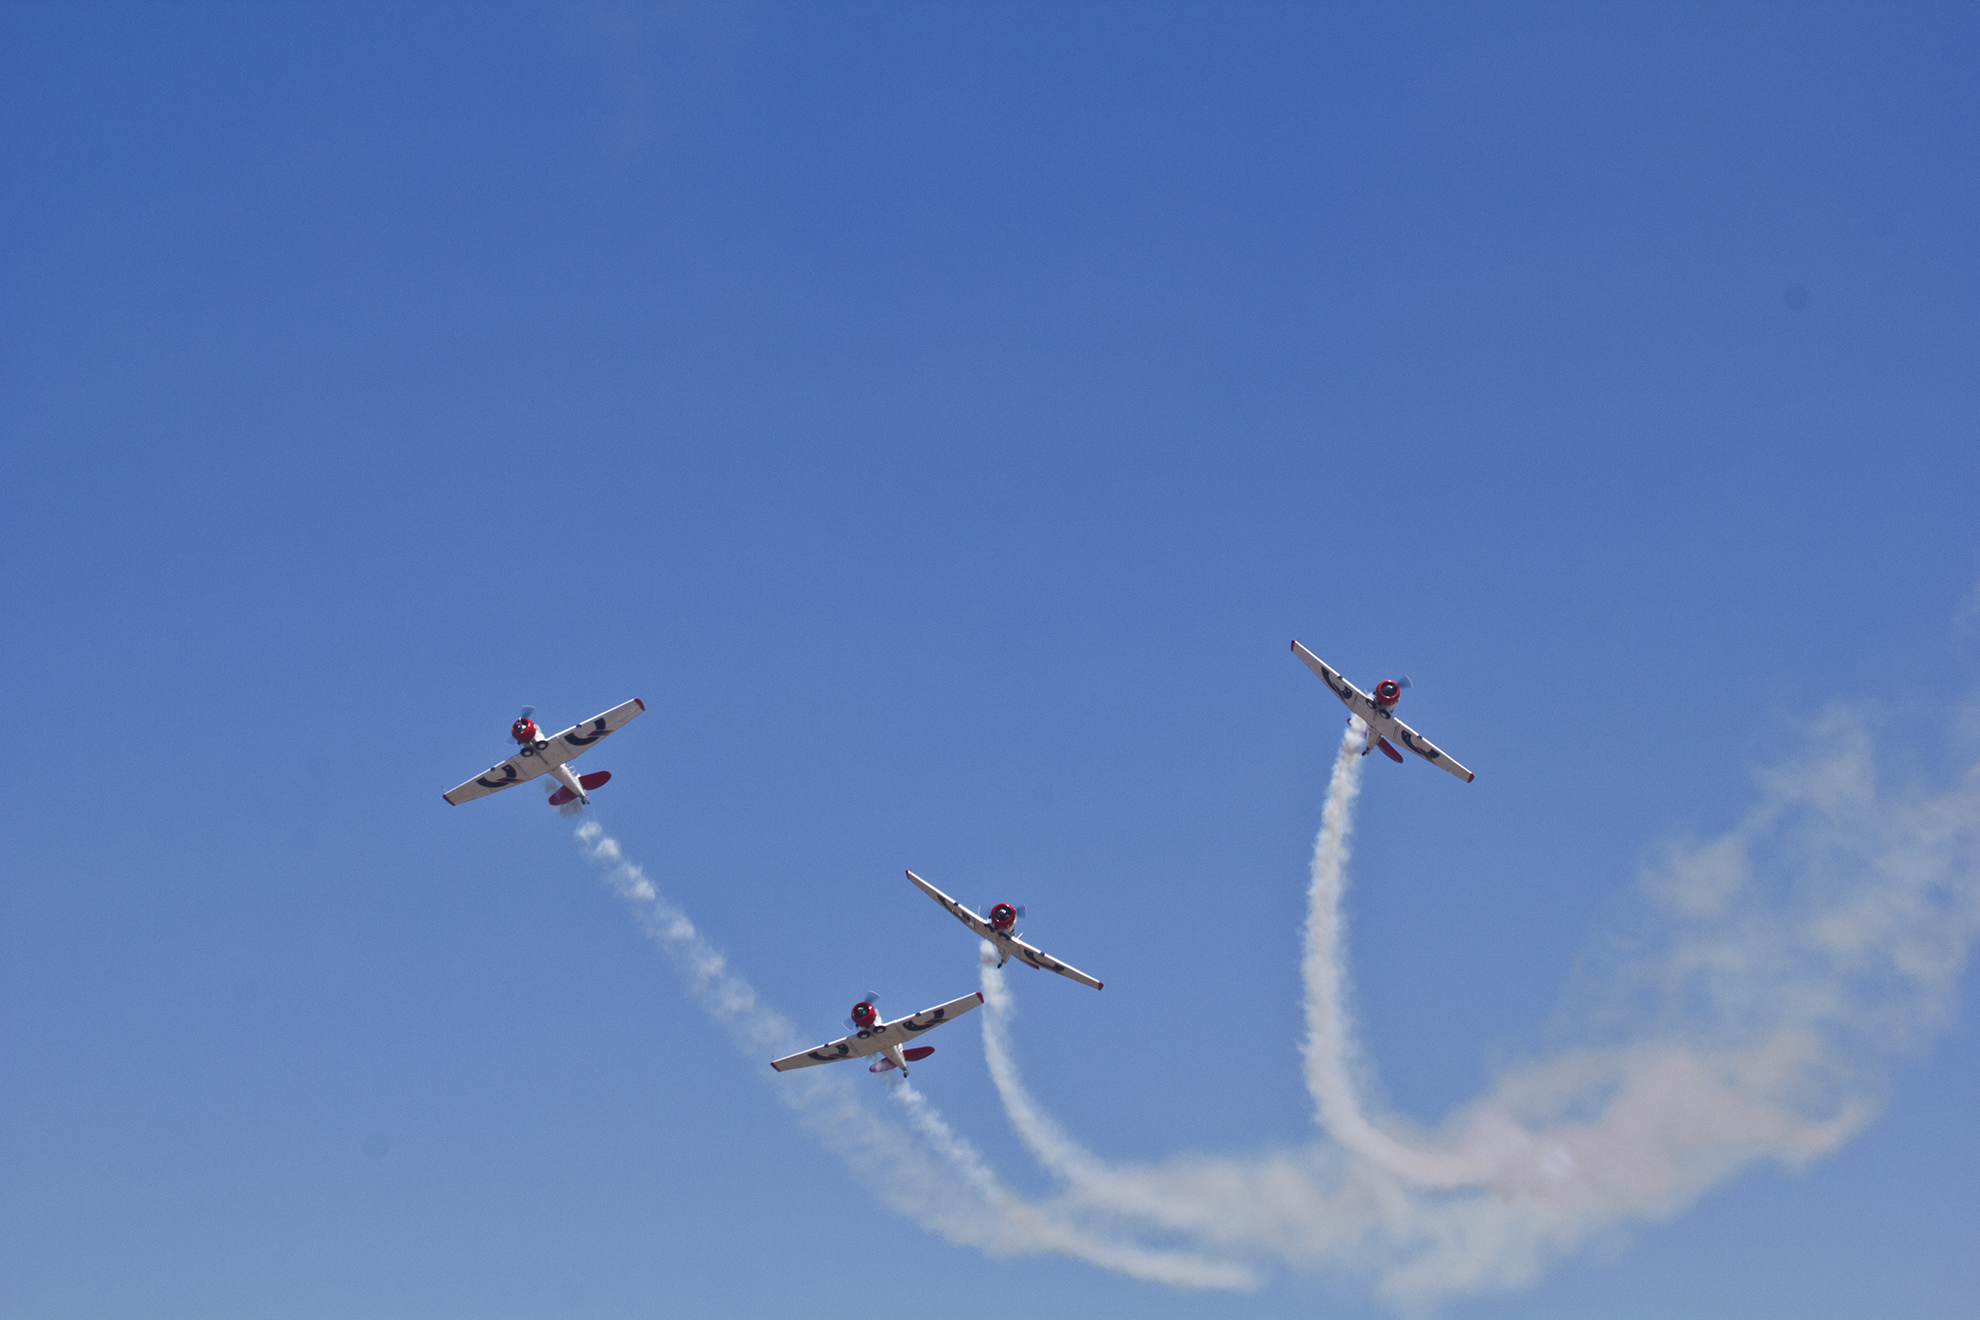 Airshows: Afica Aerospace and Defense 2012 Expo